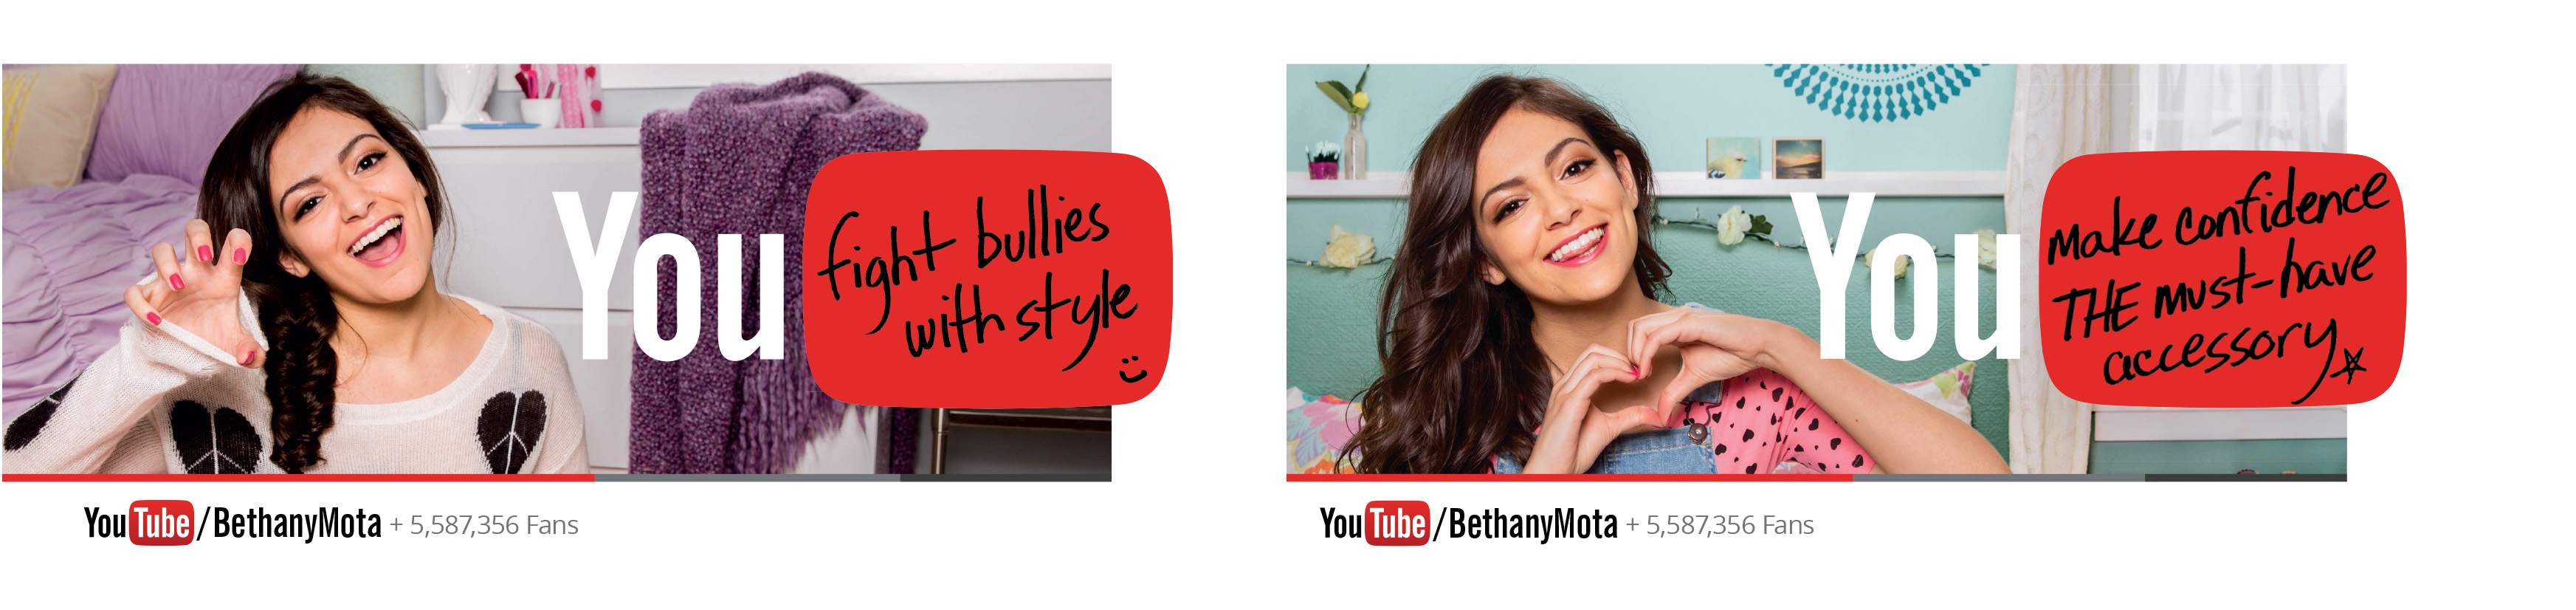 Bethany Mota is one of three YouTube stars being featured in a wide-ranging ad campaign this spring.